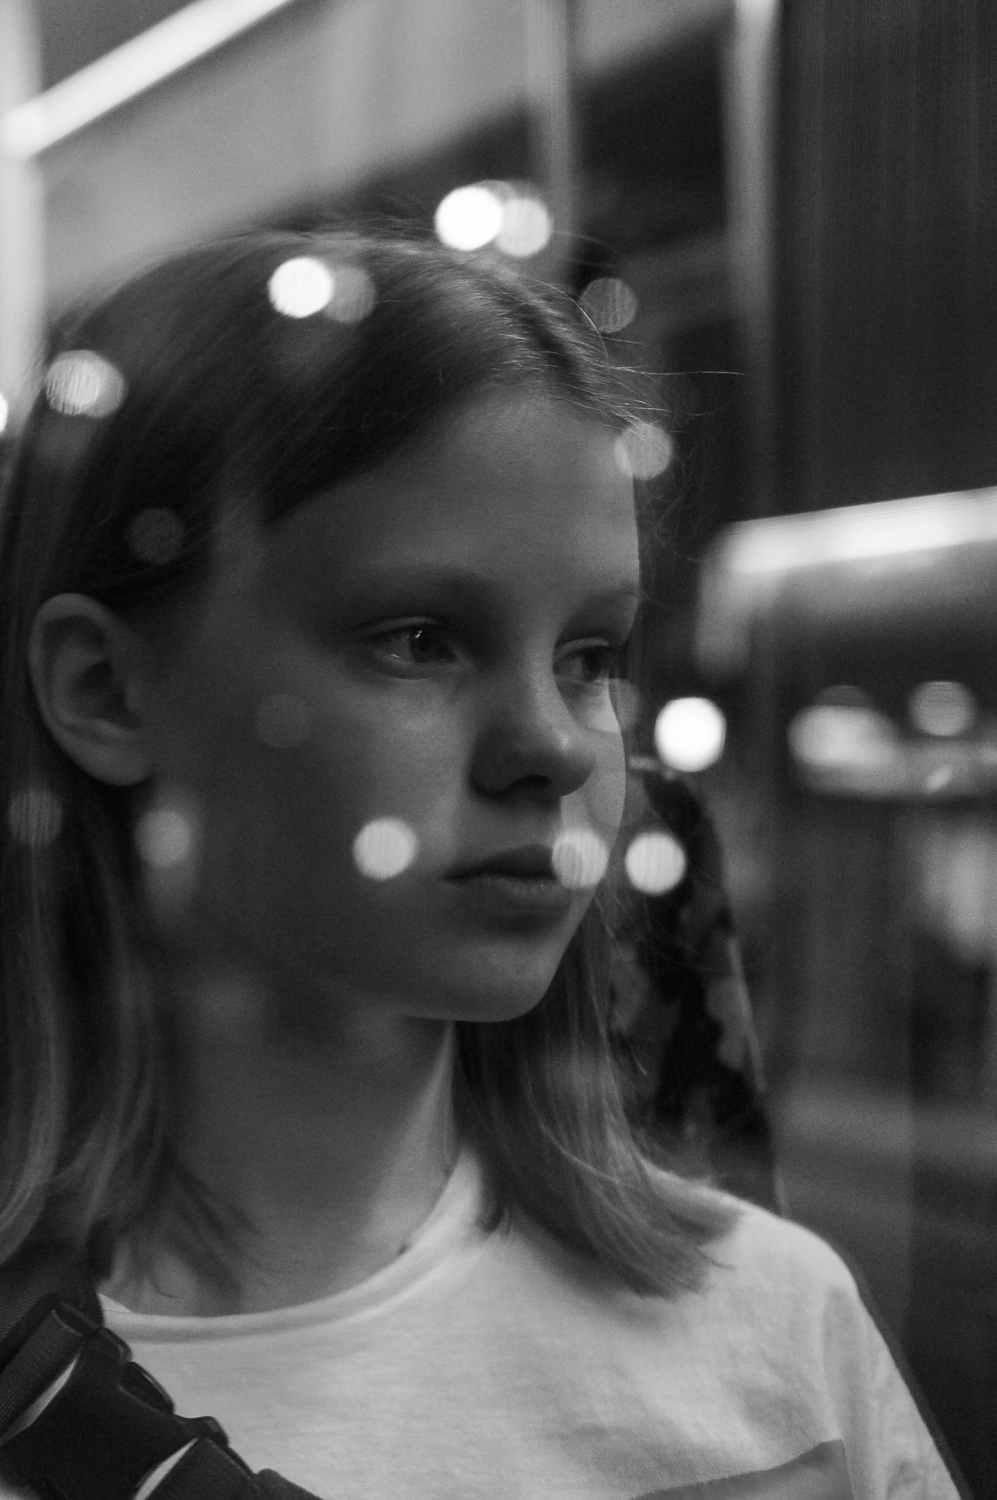 Martina Büttner: Reflection portrait in tramway, Berlin